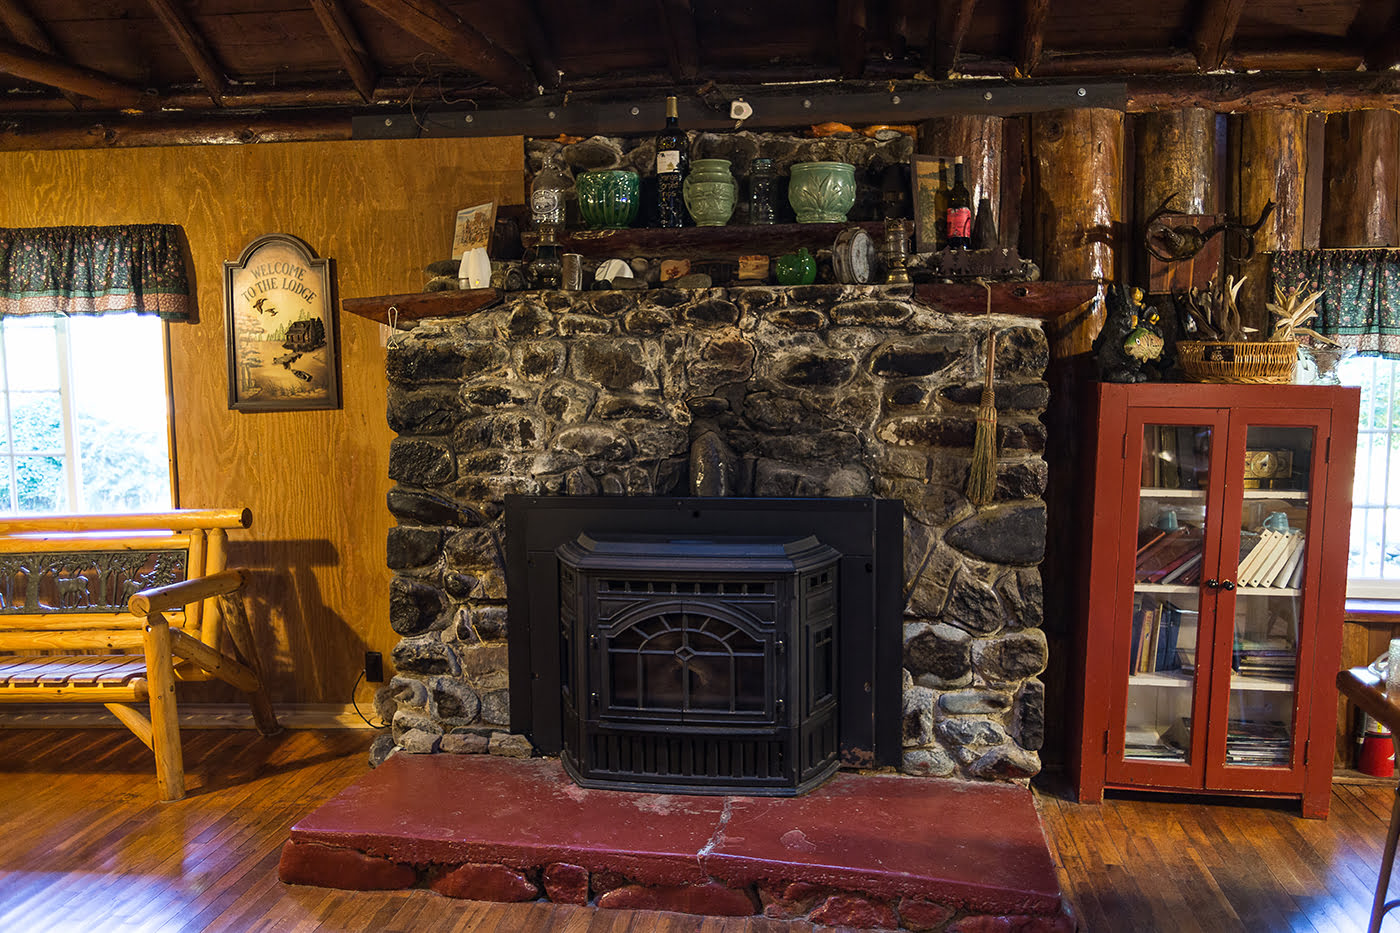 Fireplace inside Black Bar Lodge on the Wild & Scenic Rogue River